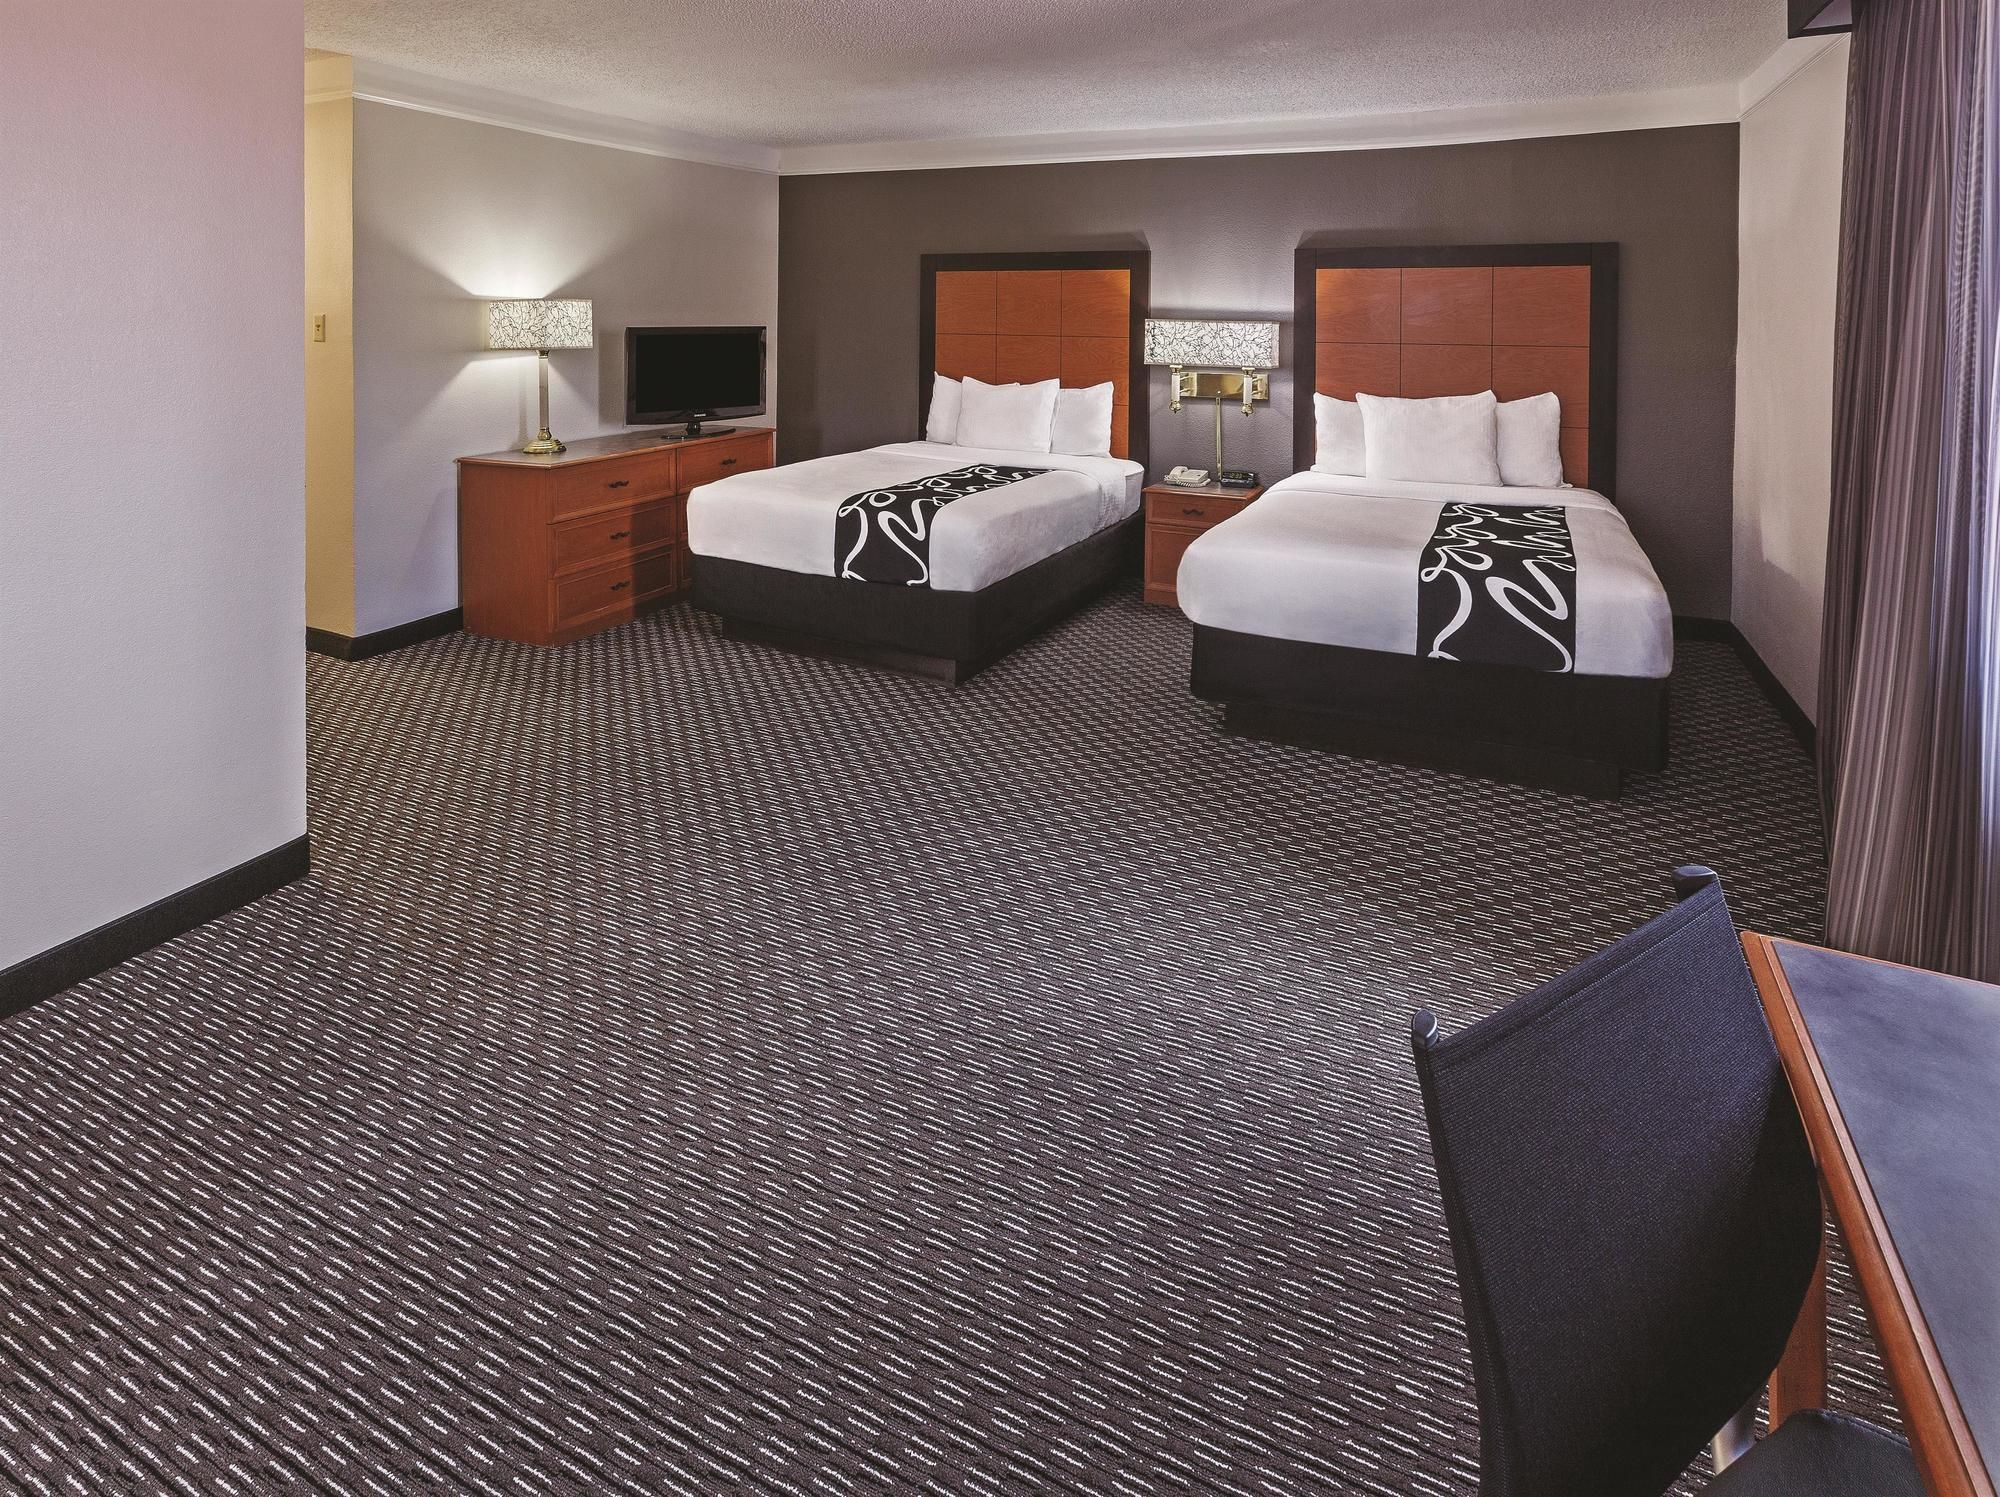 Laredo Hotel Coupons for Laredo Texas FreeHotelCouponscom